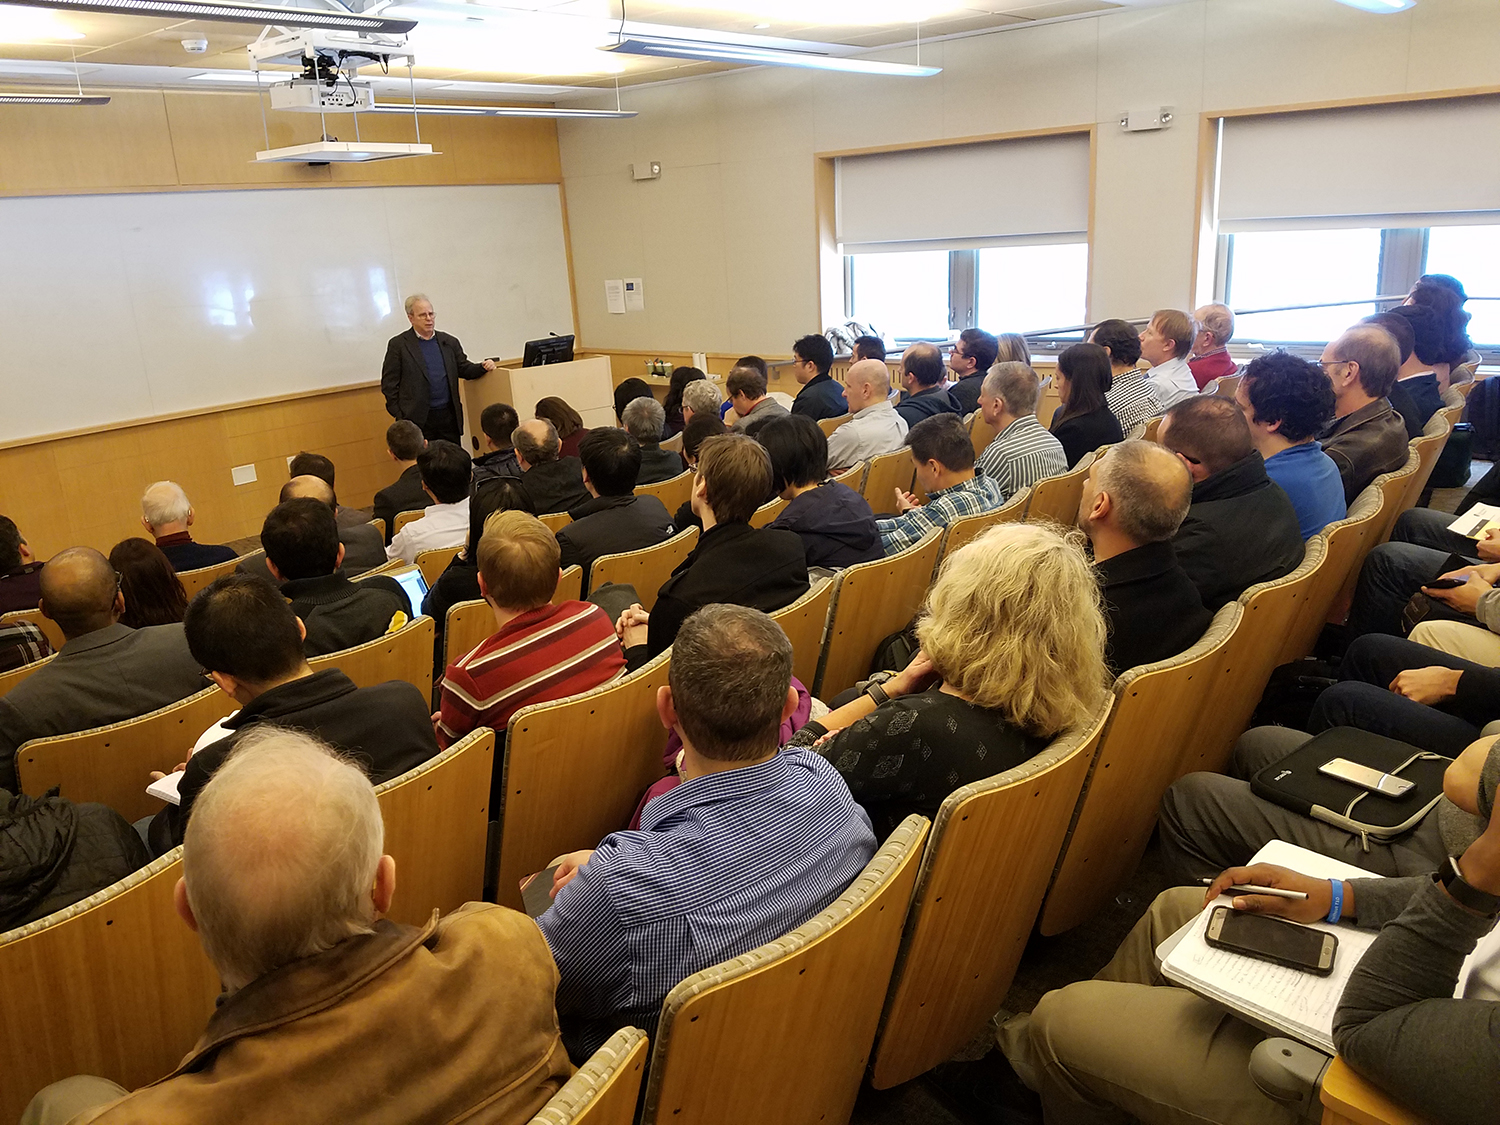 Dr. Staffin addresses the SBU research community during the DOD visit to campus.